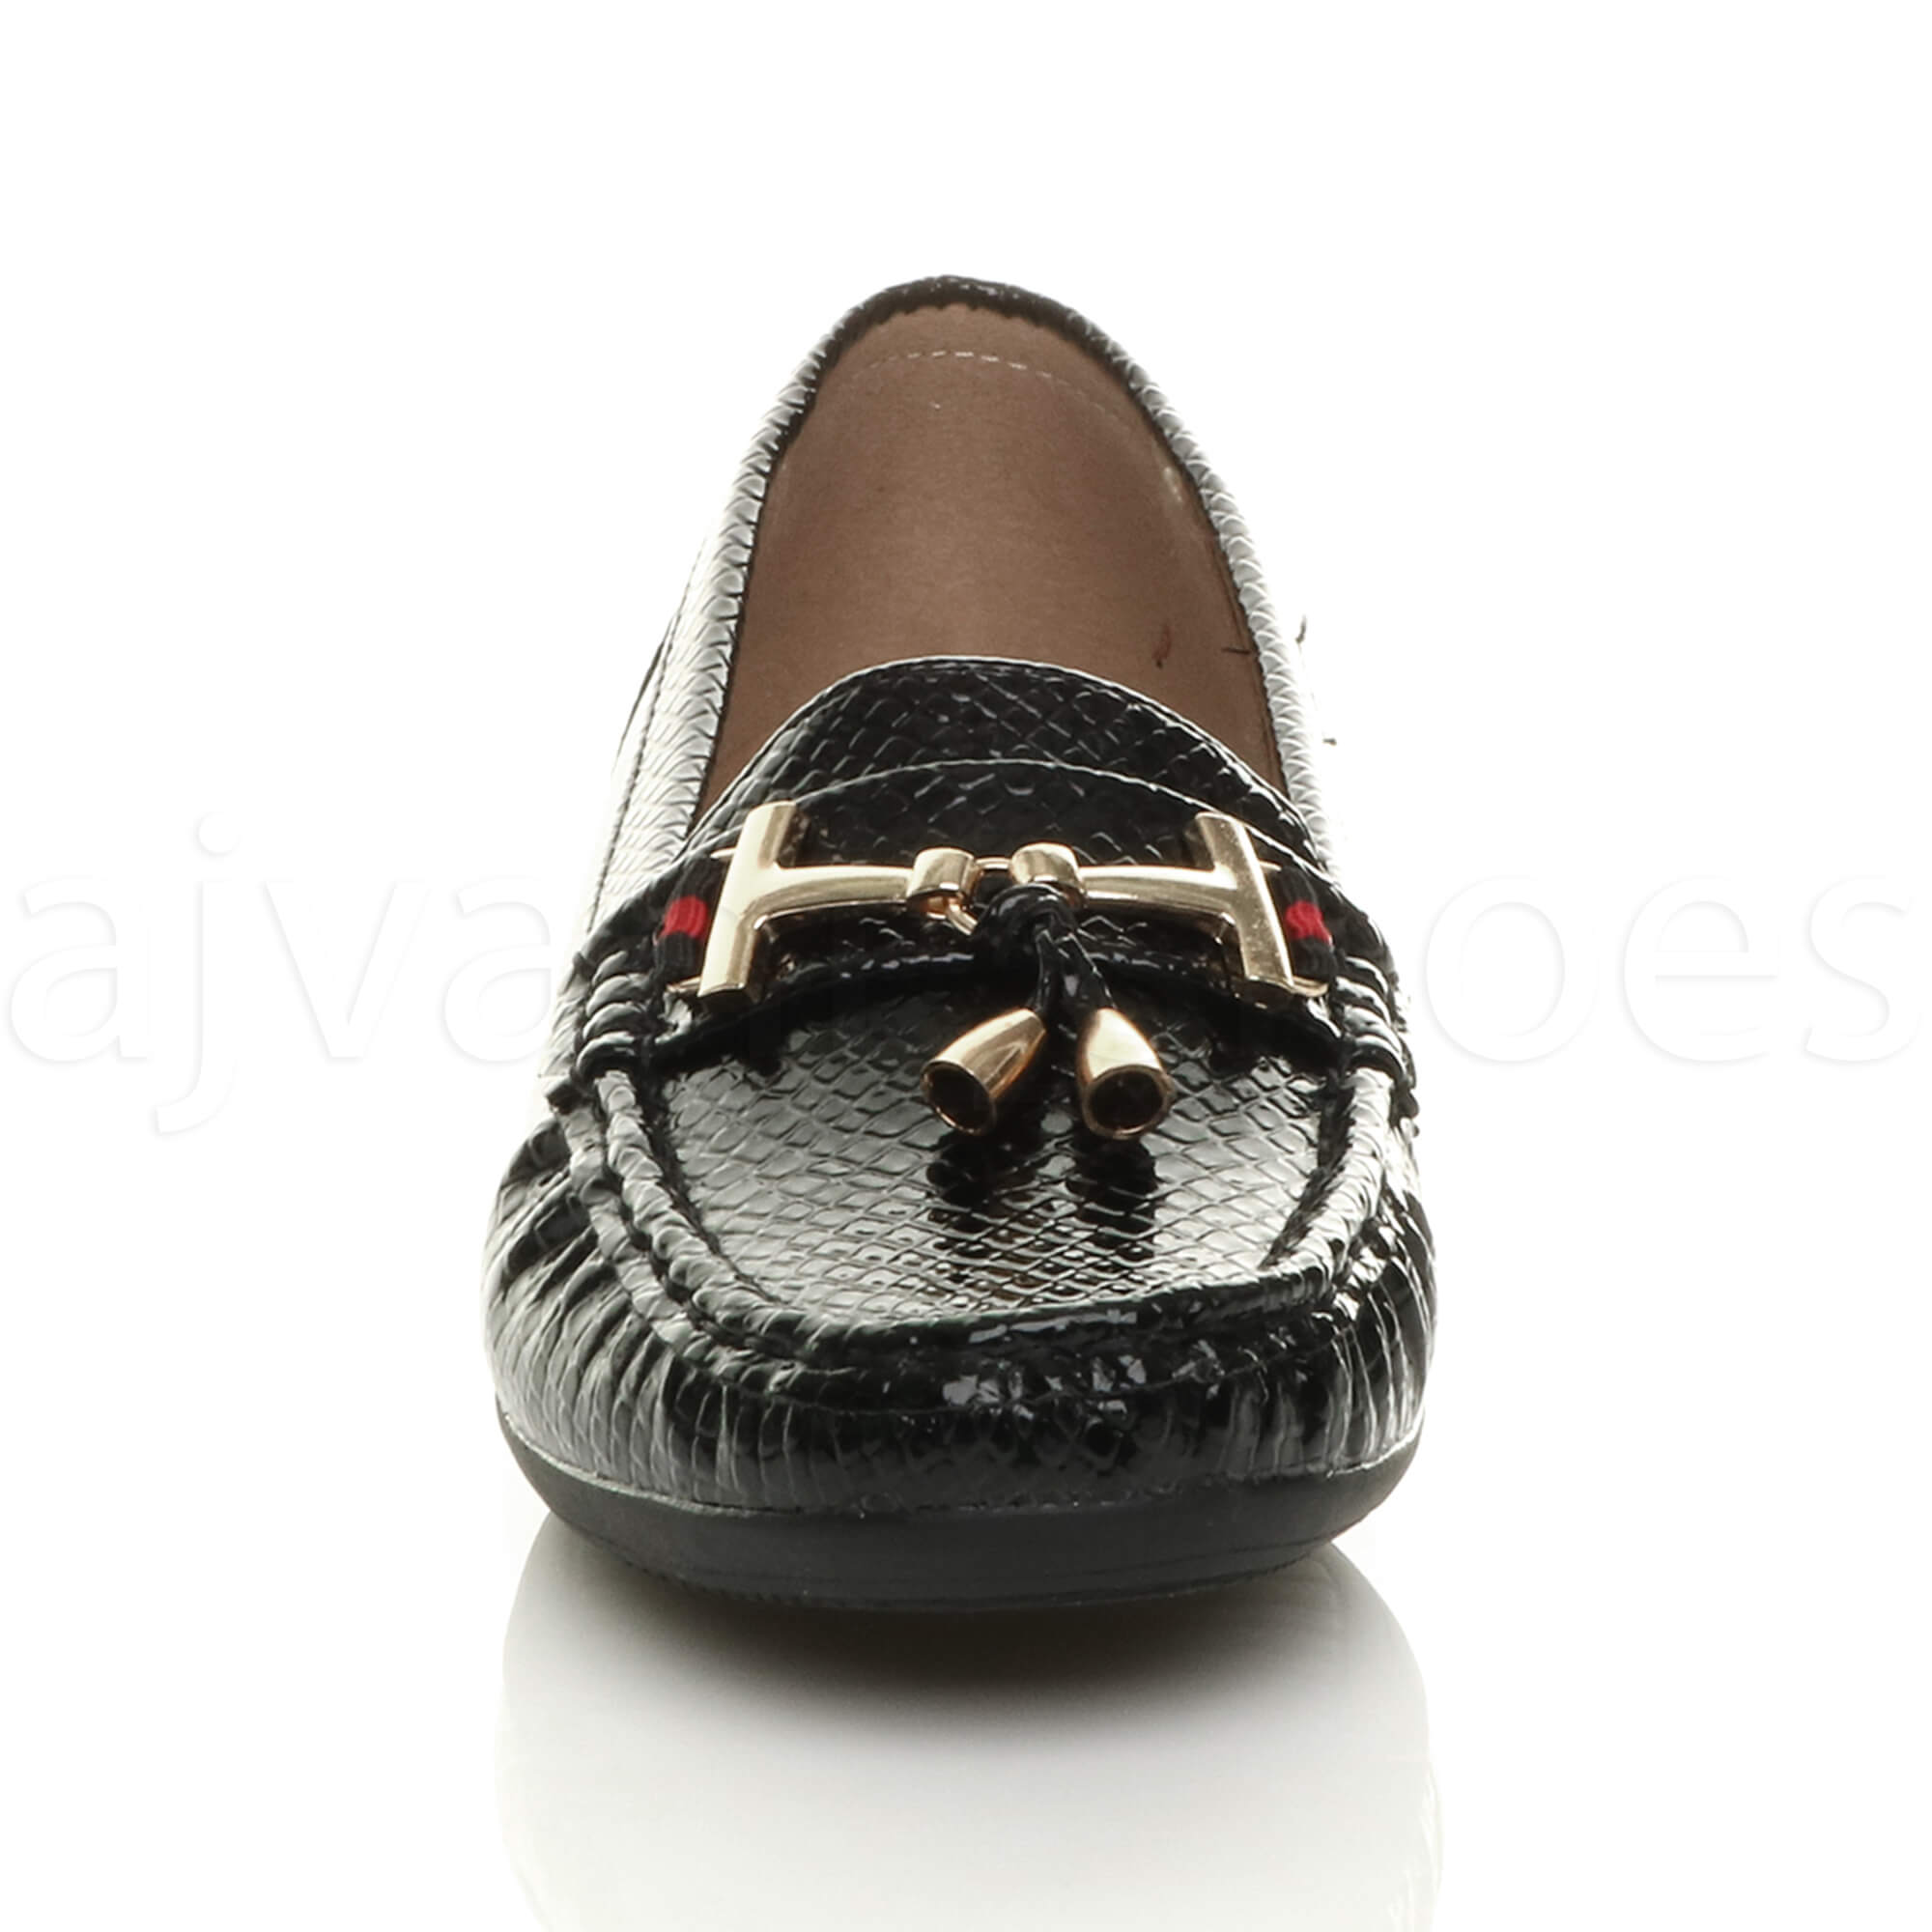 WOMENS-LADIES-LOW-HEEL-WEDGE-LEATHER-TASSEL-LOAFERS-COMFORT-MOCCASINS-SHOES-SIZE thumbnail 23